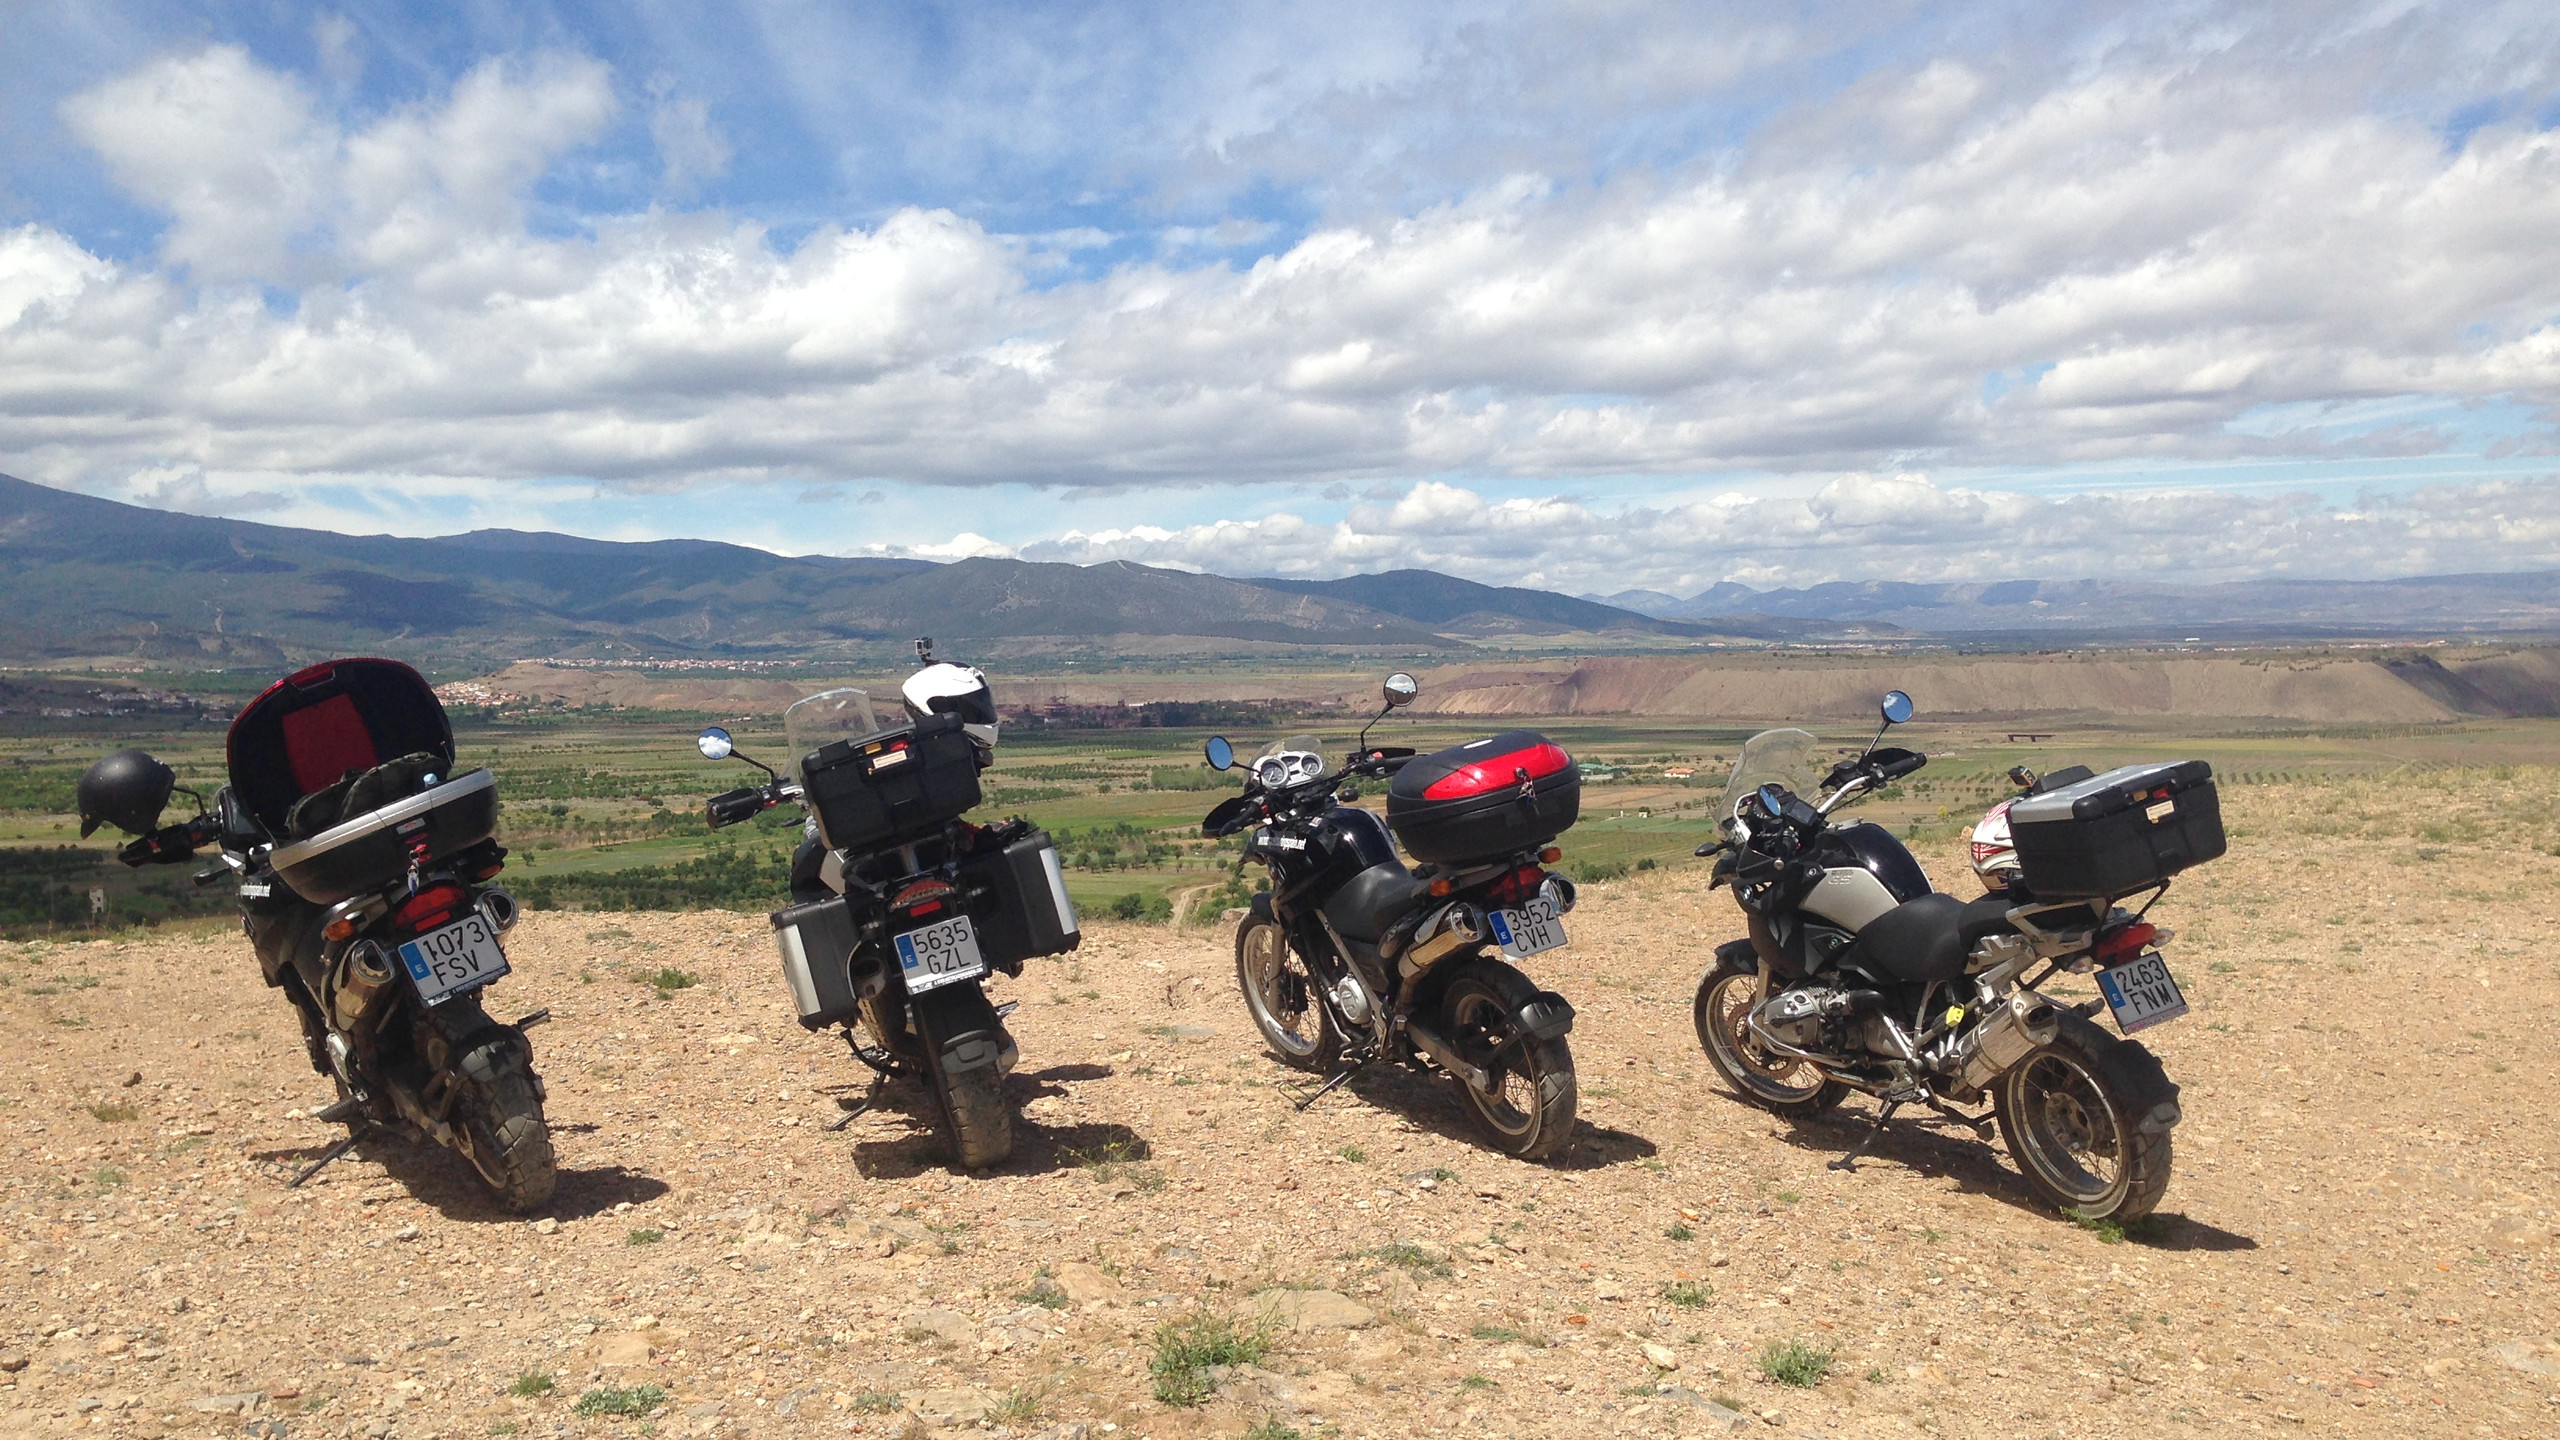 A selection of available bikes to hire at GS Motorcycle Tours